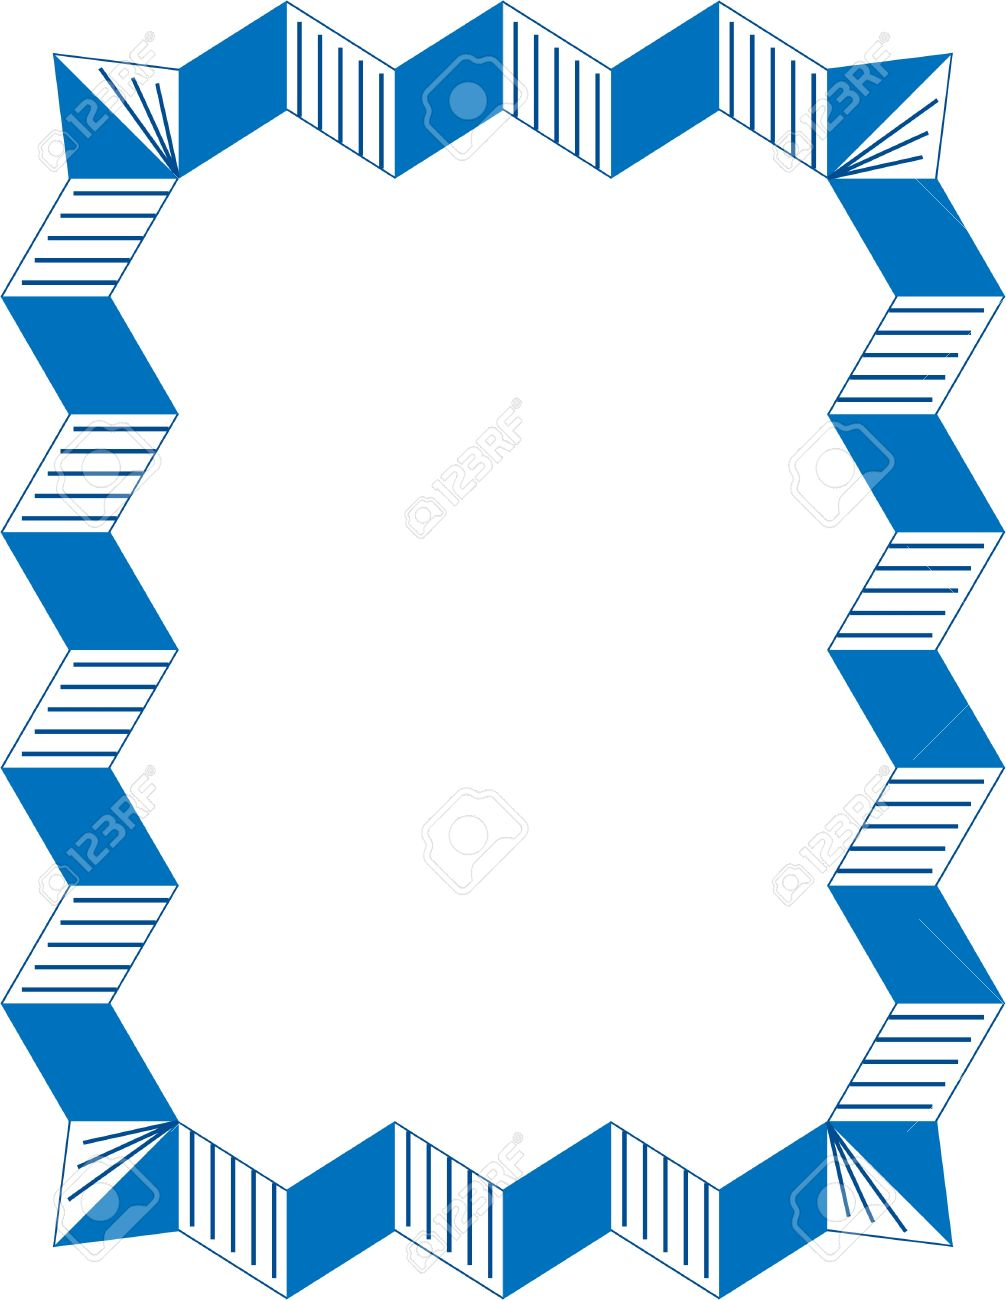 Graphic Frame For Design Elements Royalty Free Cliparts, Vectors ...